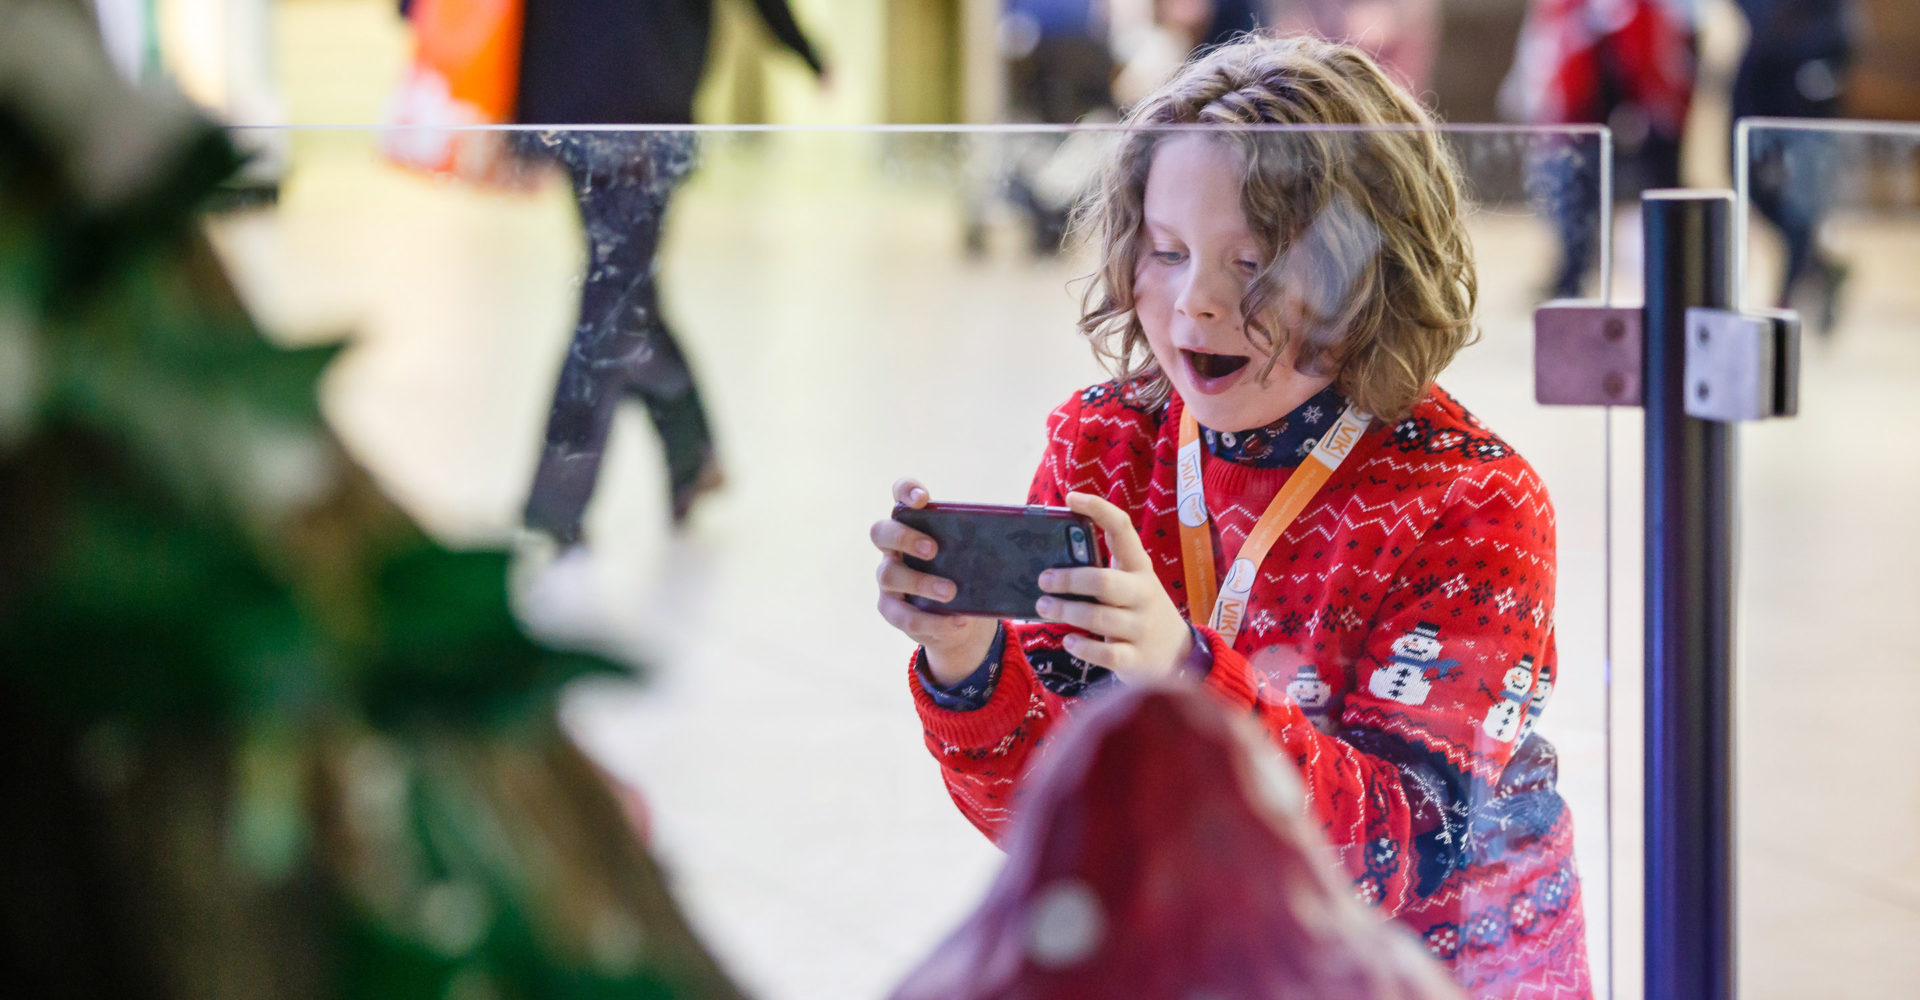 Eldon Square Christmas Augmented Reality Experience